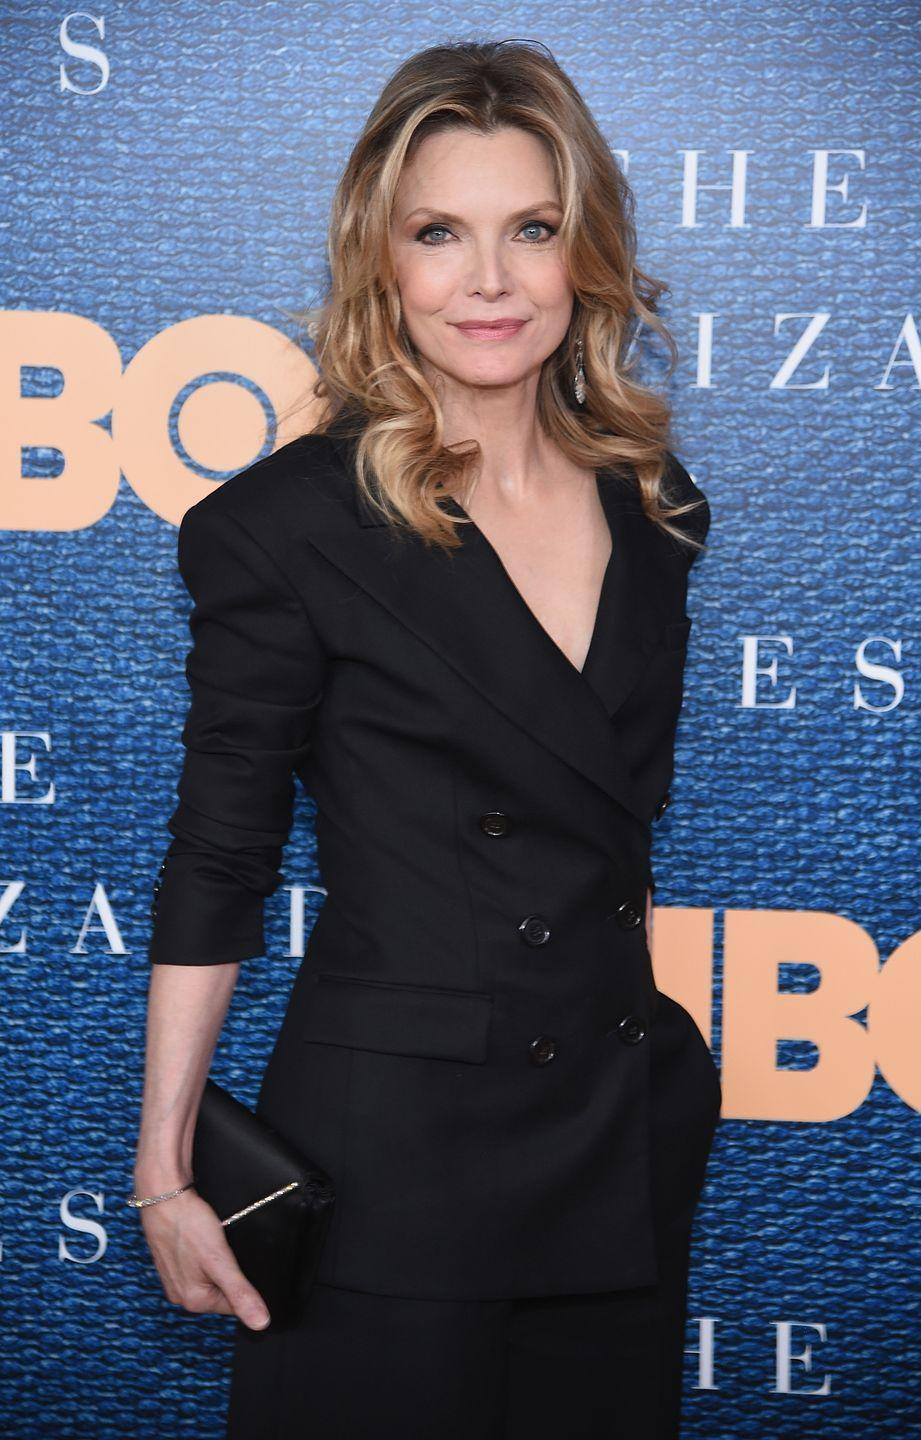 "<p>Pfeiffer <a href=""http://www.telegraph.co.uk/films/0/career-ender-actors-hated-films/maxwell-caulfield-michelle-pfeiffer-grease-ii/"" rel=""nofollow noopener"" target=""_blank"" data-ylk=""slk:revealed"" class=""link rapid-noclick-resp"">revealed</a> in 2007, ""I hated that film with a vengeance and could not believe how bad it was. At the time I was young and didn't know any better.""</p>"